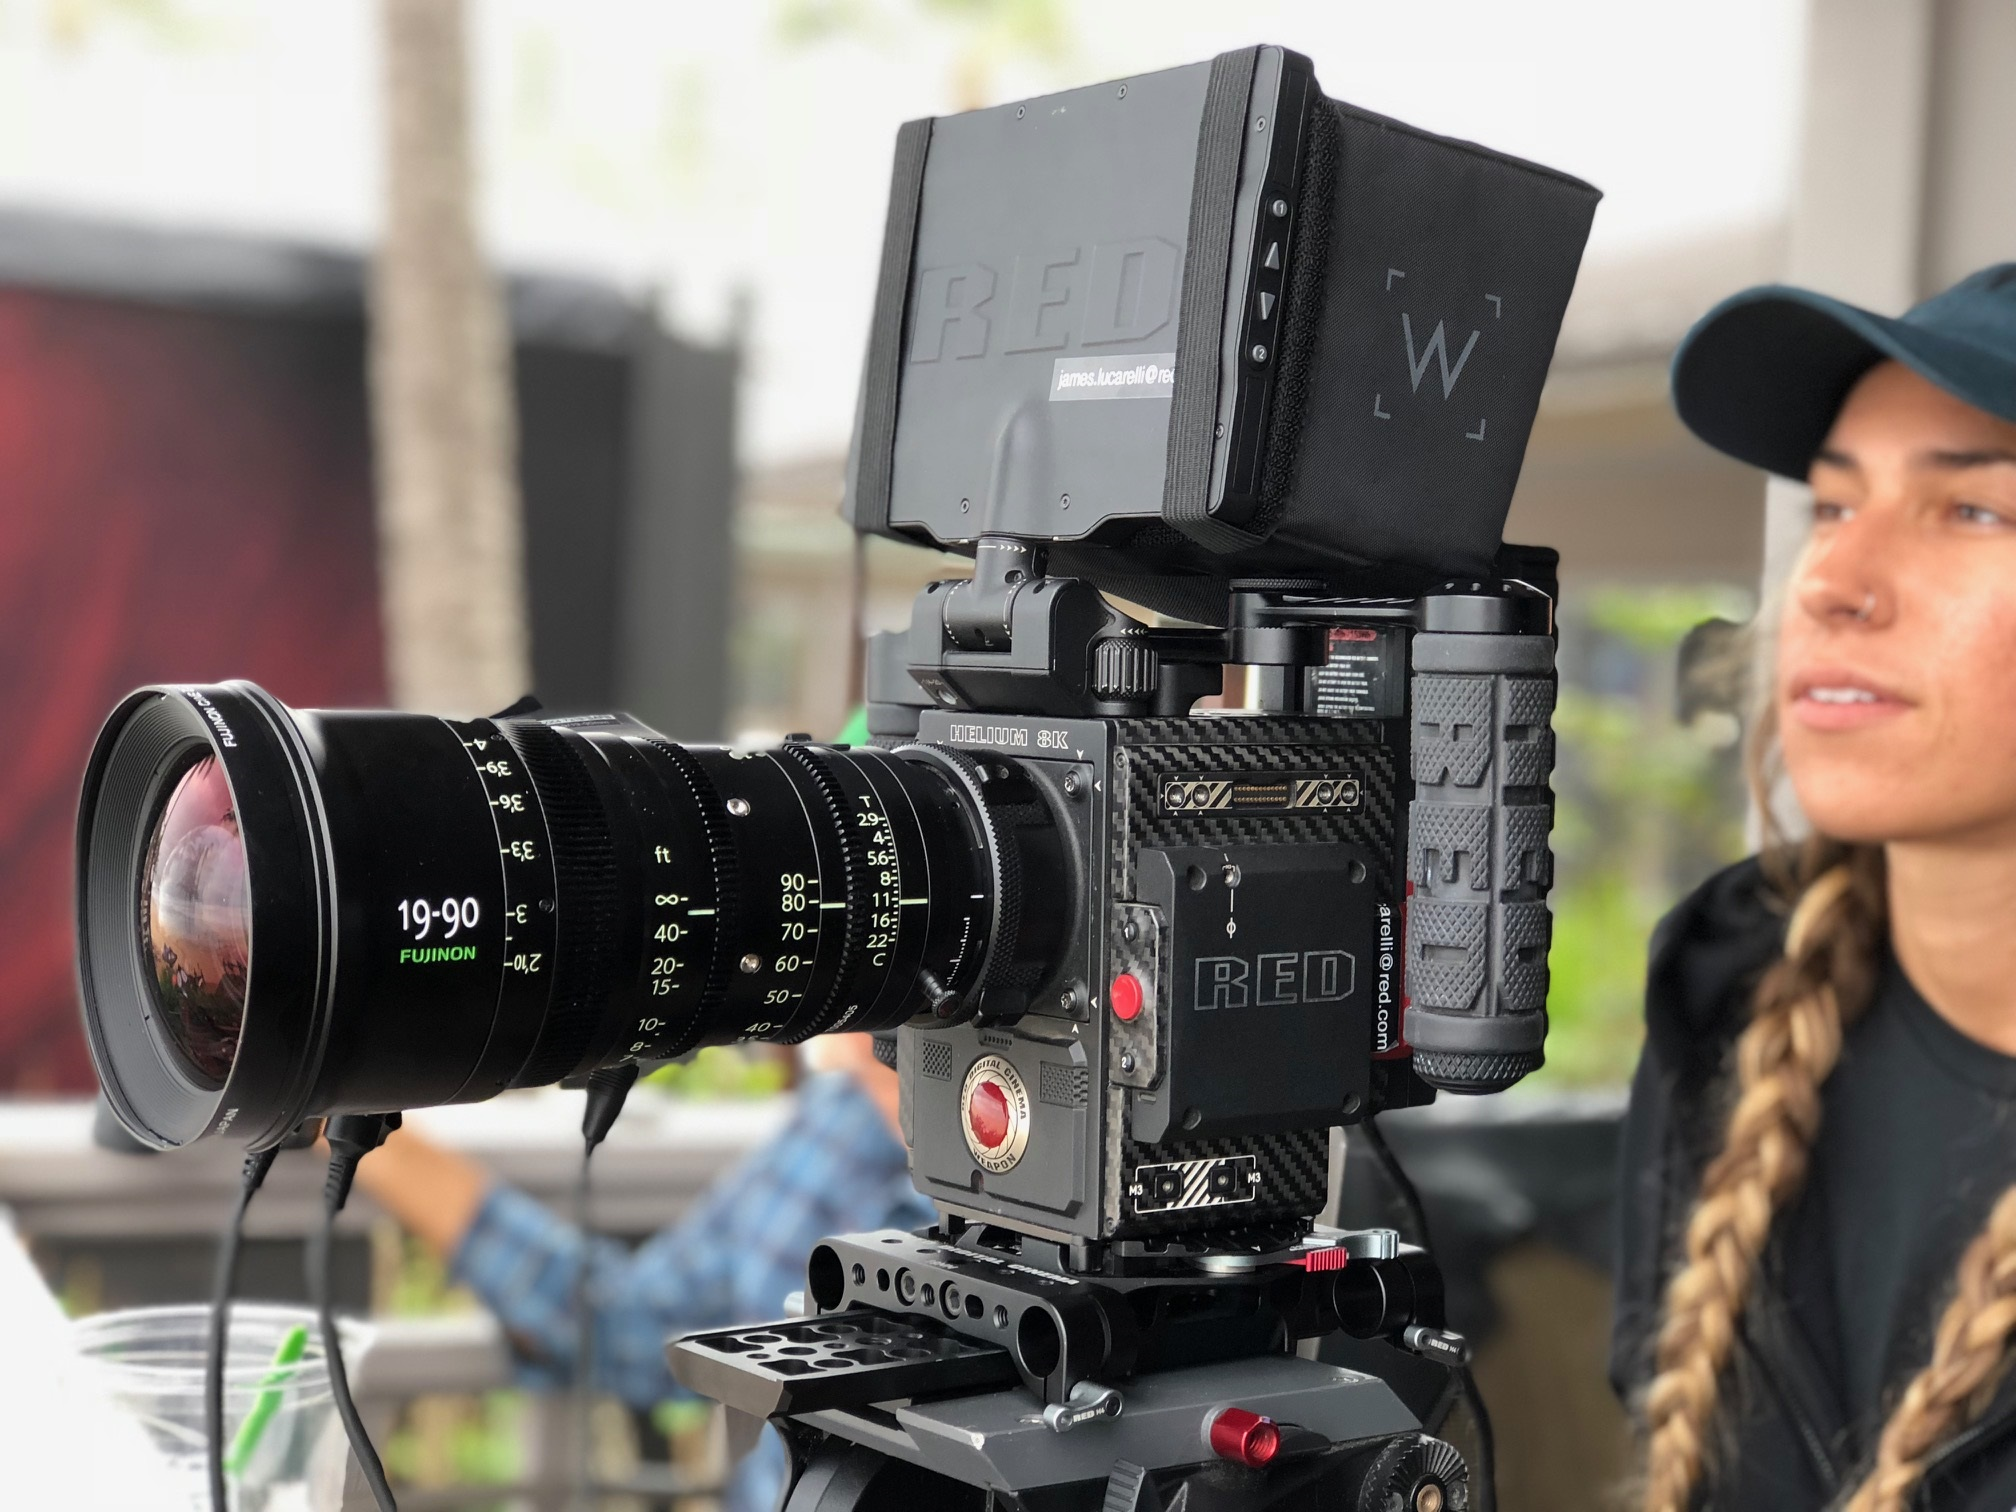 RED Digital Cinema 8K camera paired with FUJINON zooms